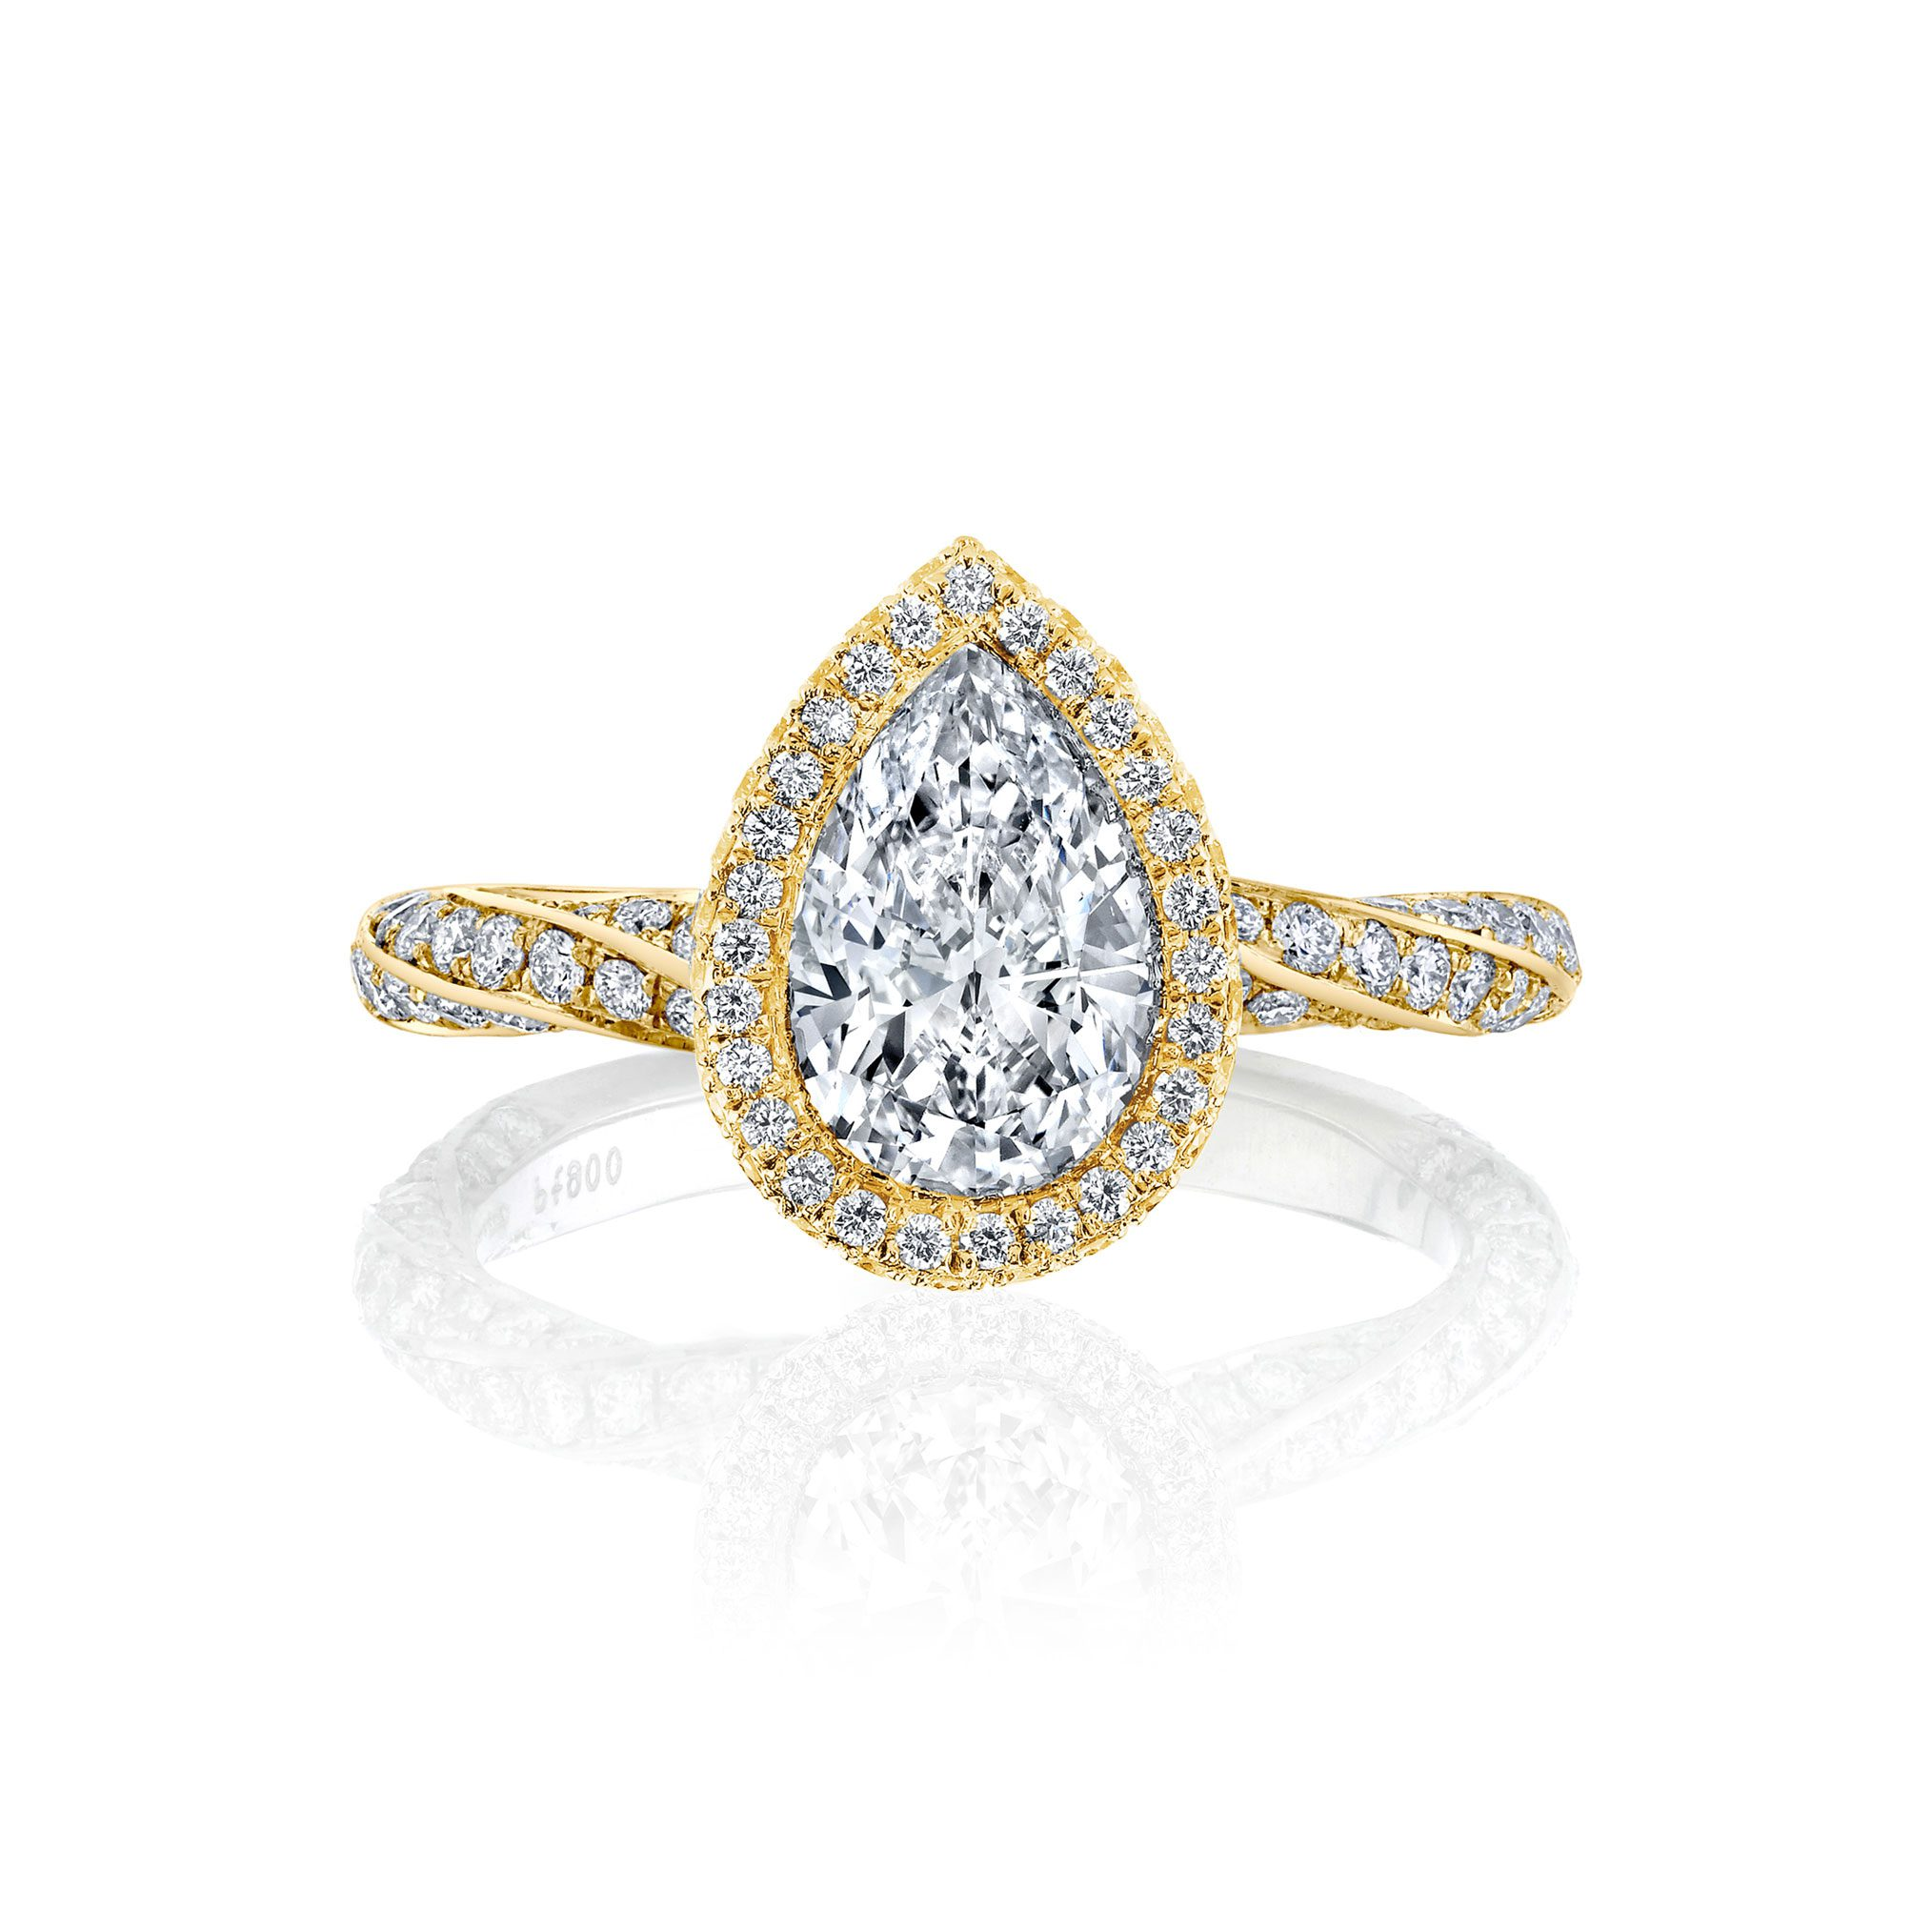 Camille Seamless Halo® Pear Cut Engagement Ring with Twist Pavé Band in 18k yellow gold